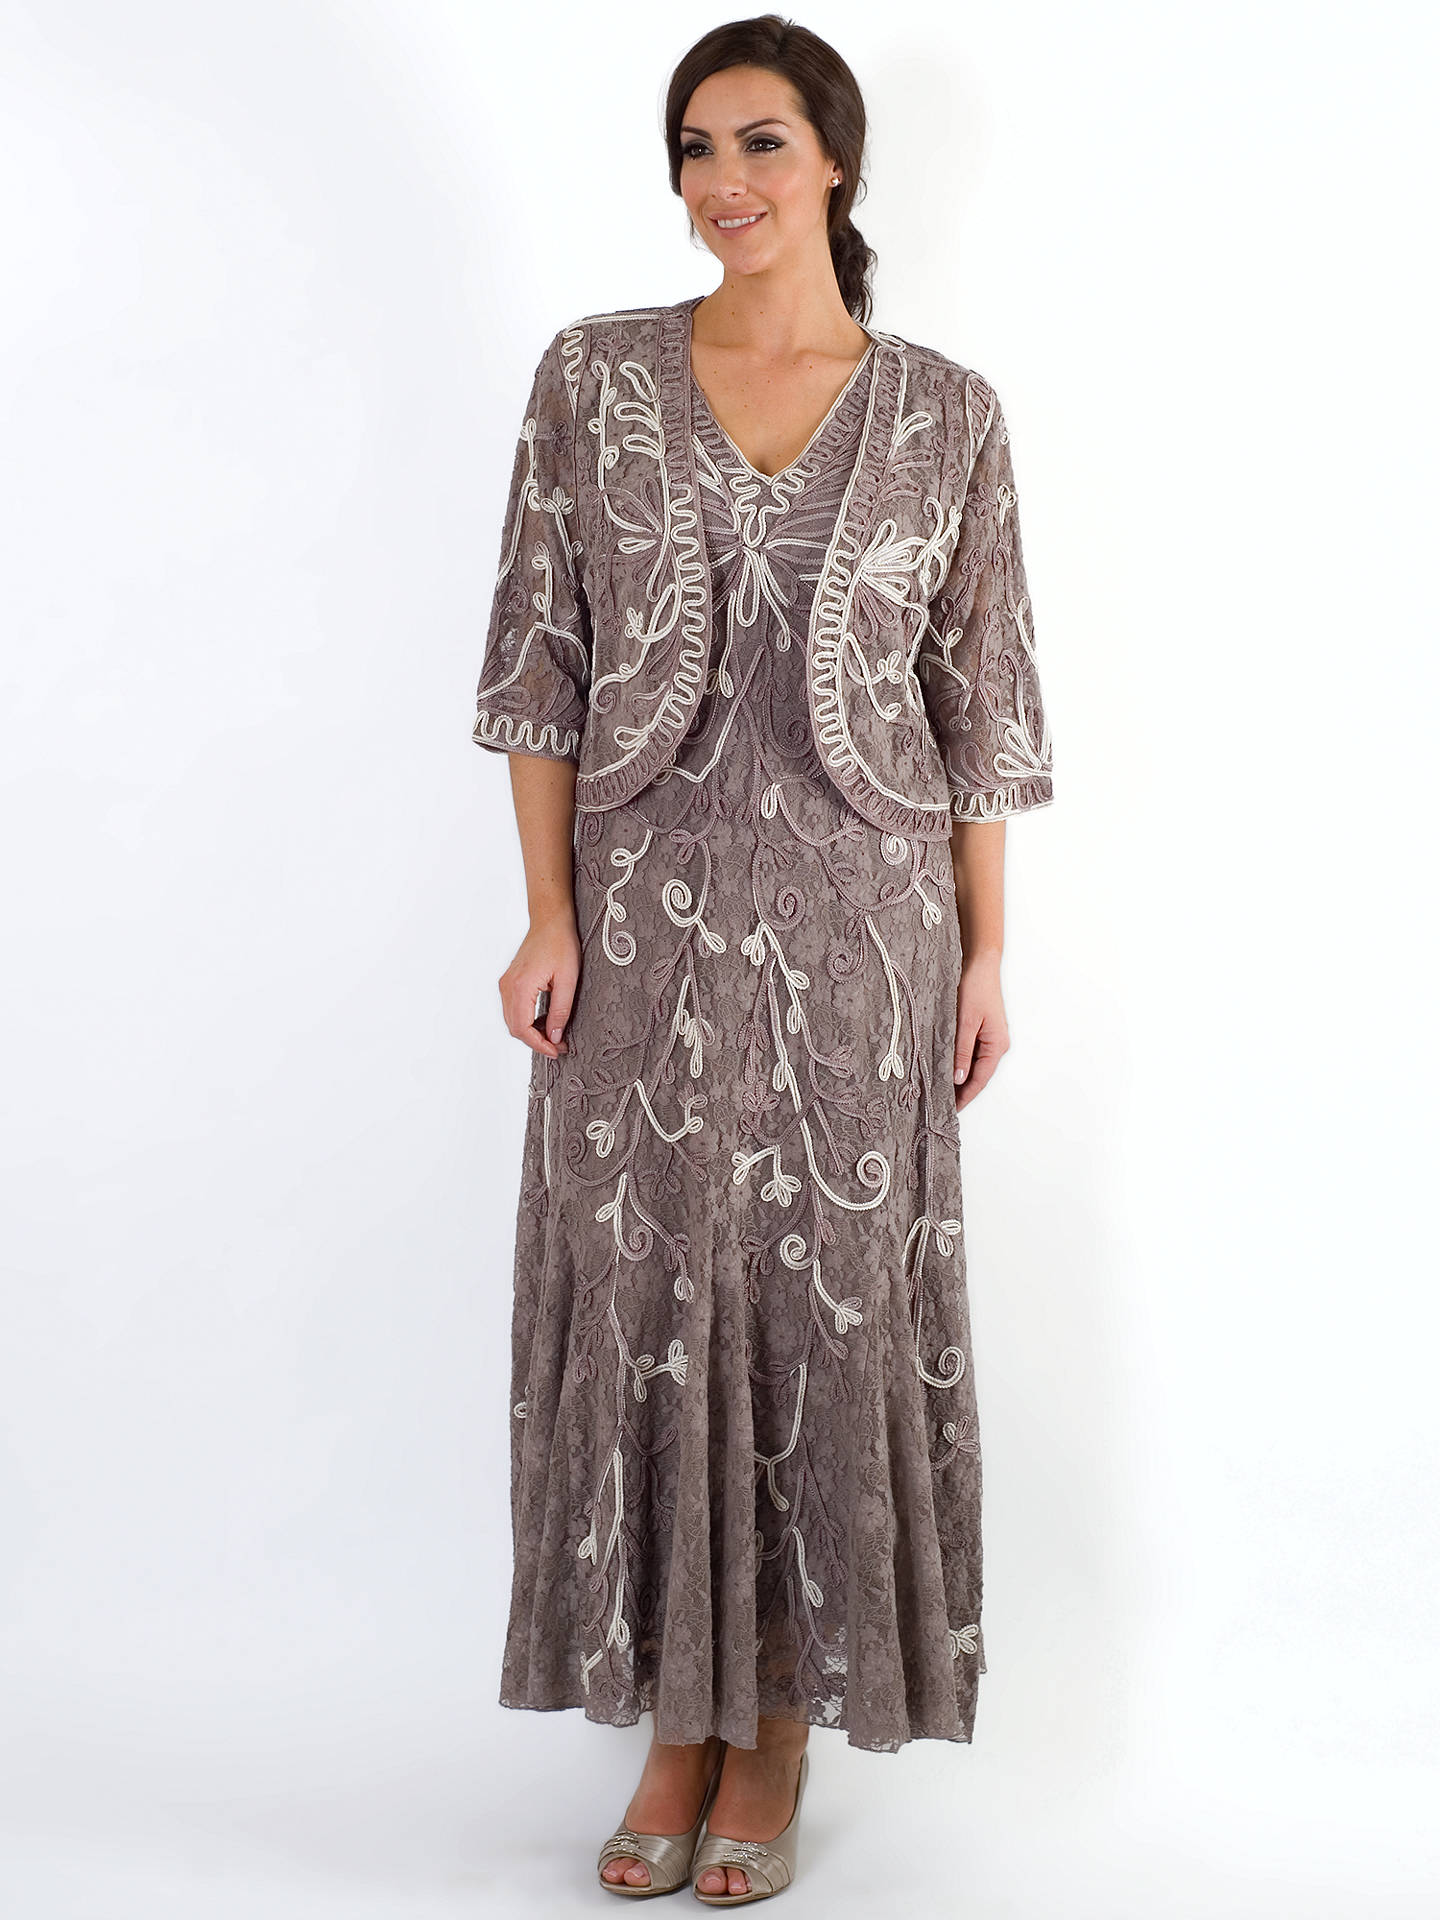 BuyChesca Ombre Cornelli Dress, Mink, 12 Online at johnlewis.com